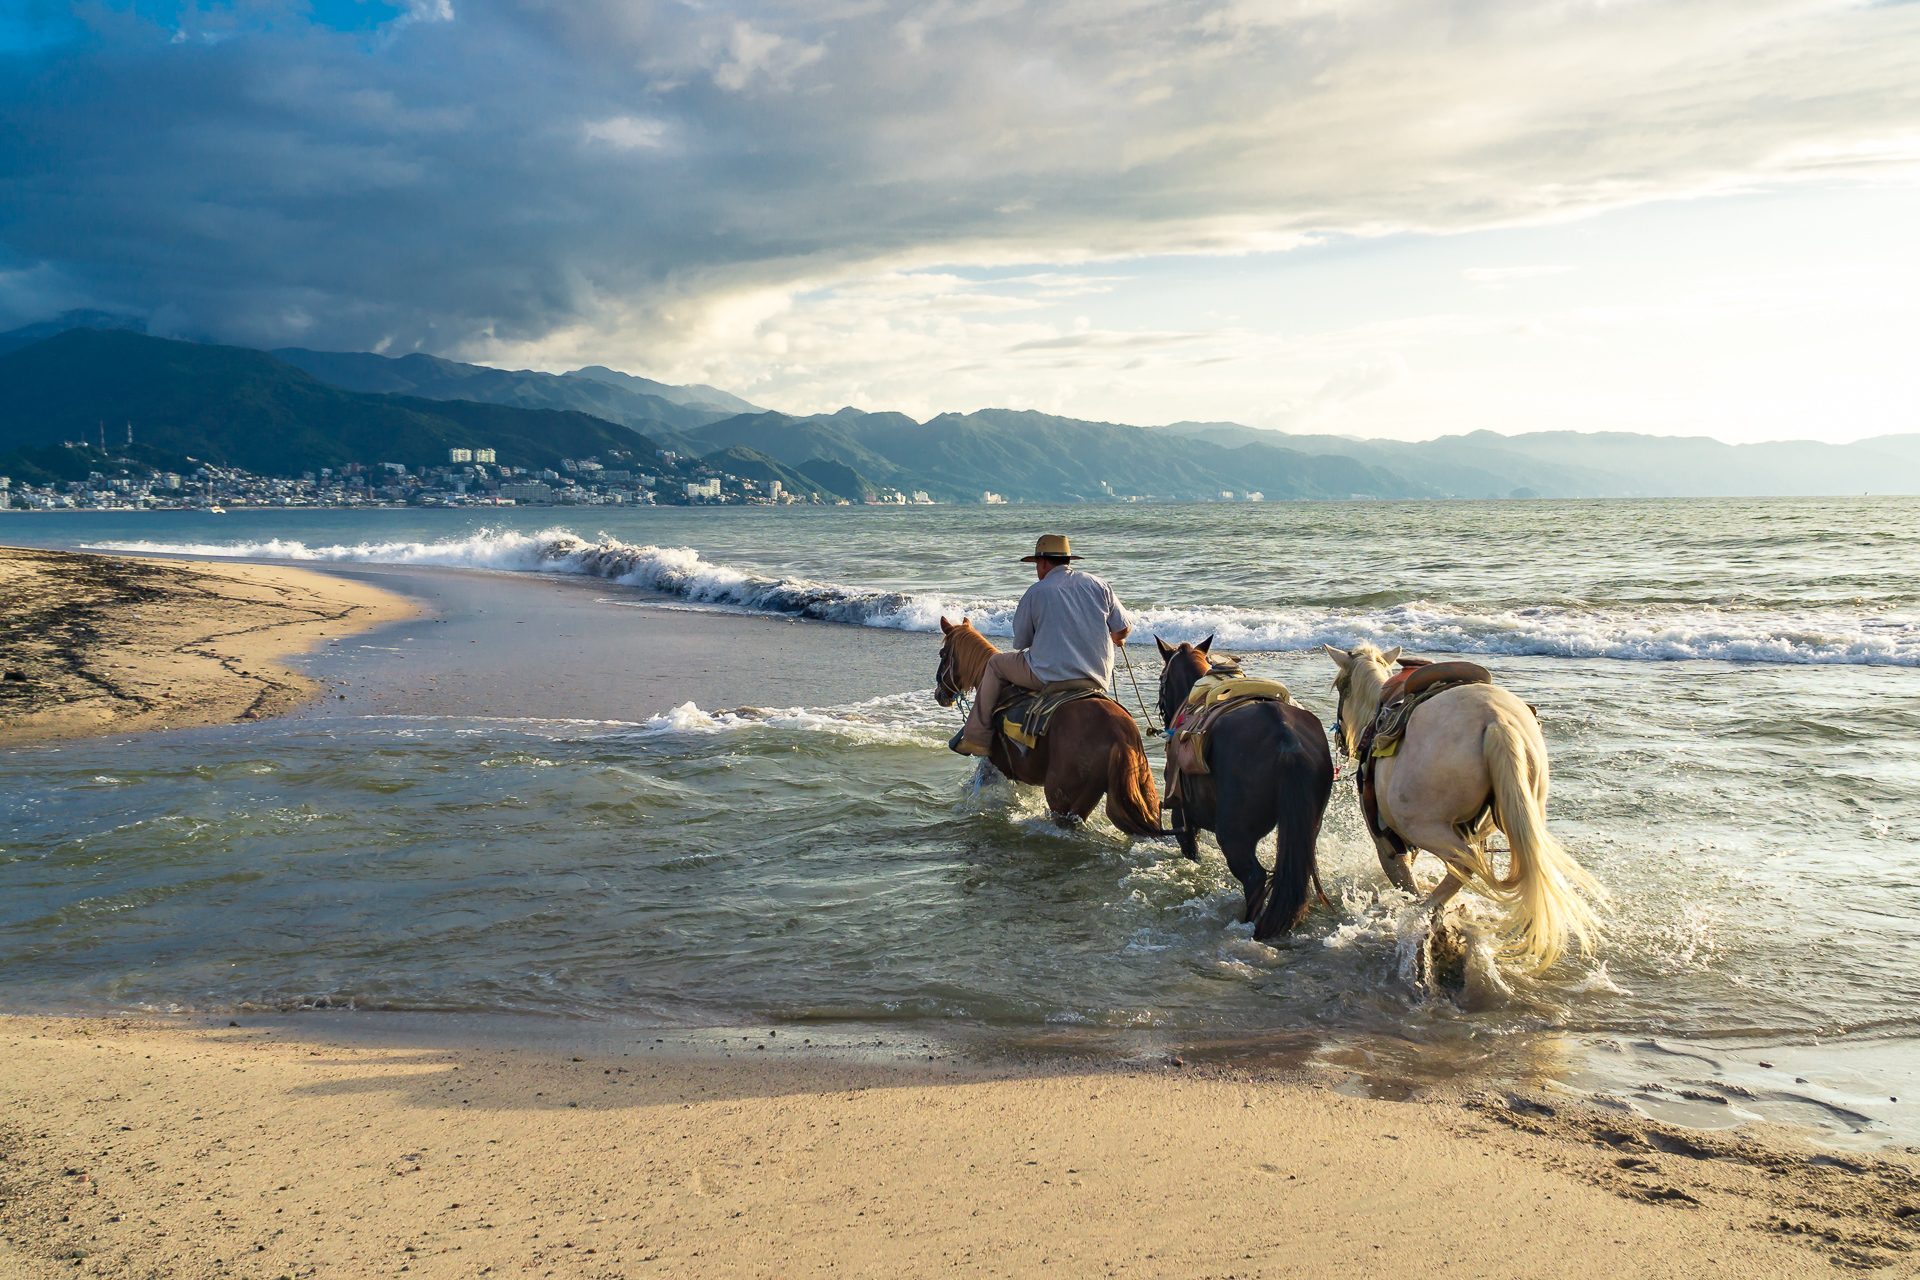 Horses in the Surf